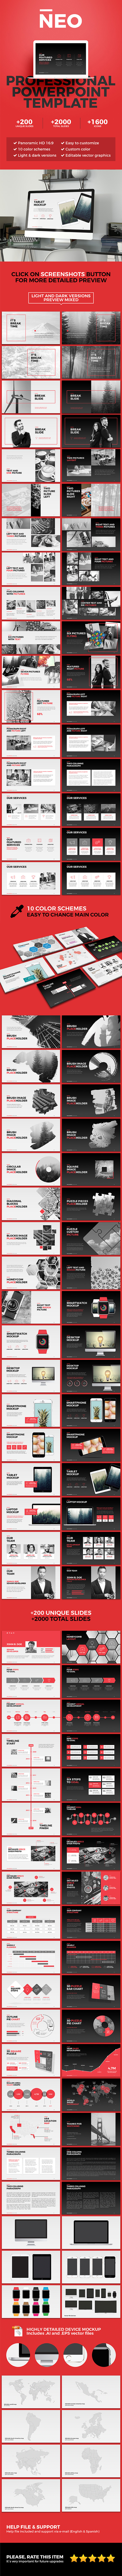 NEO Multipurpose Powerpoint Template - Miscellaneous PowerPoint Templates